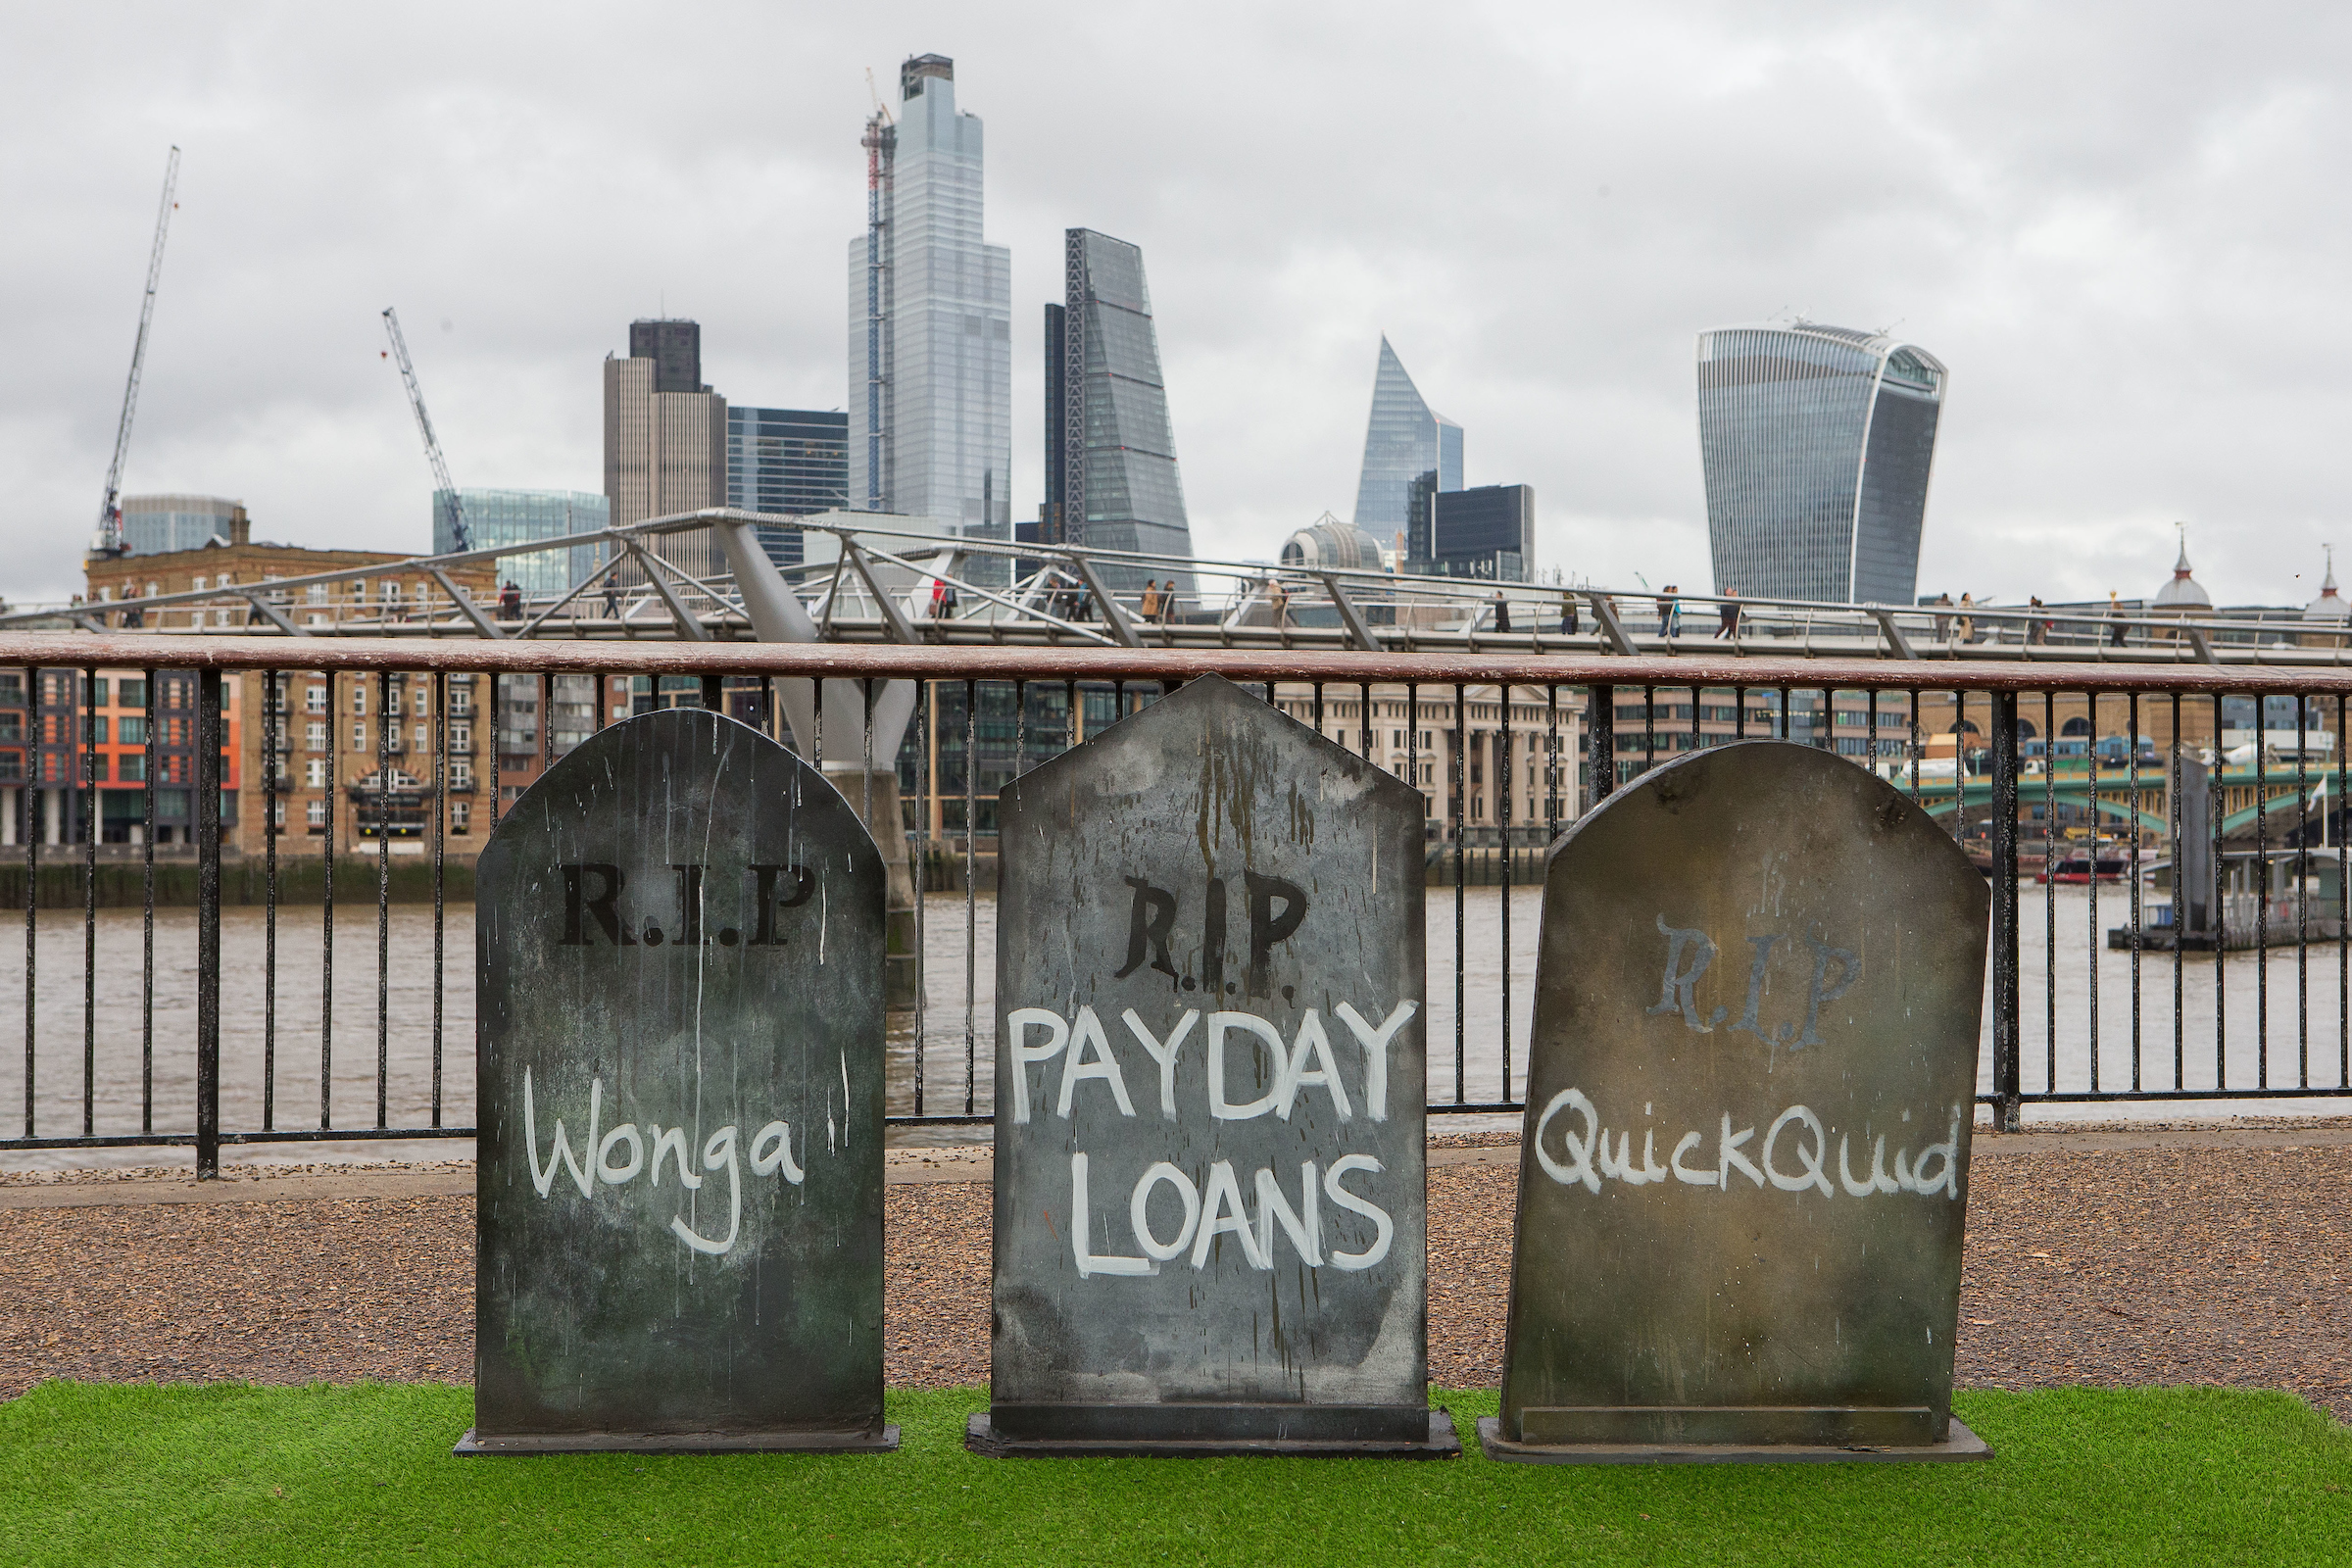 RIP Payday loans image